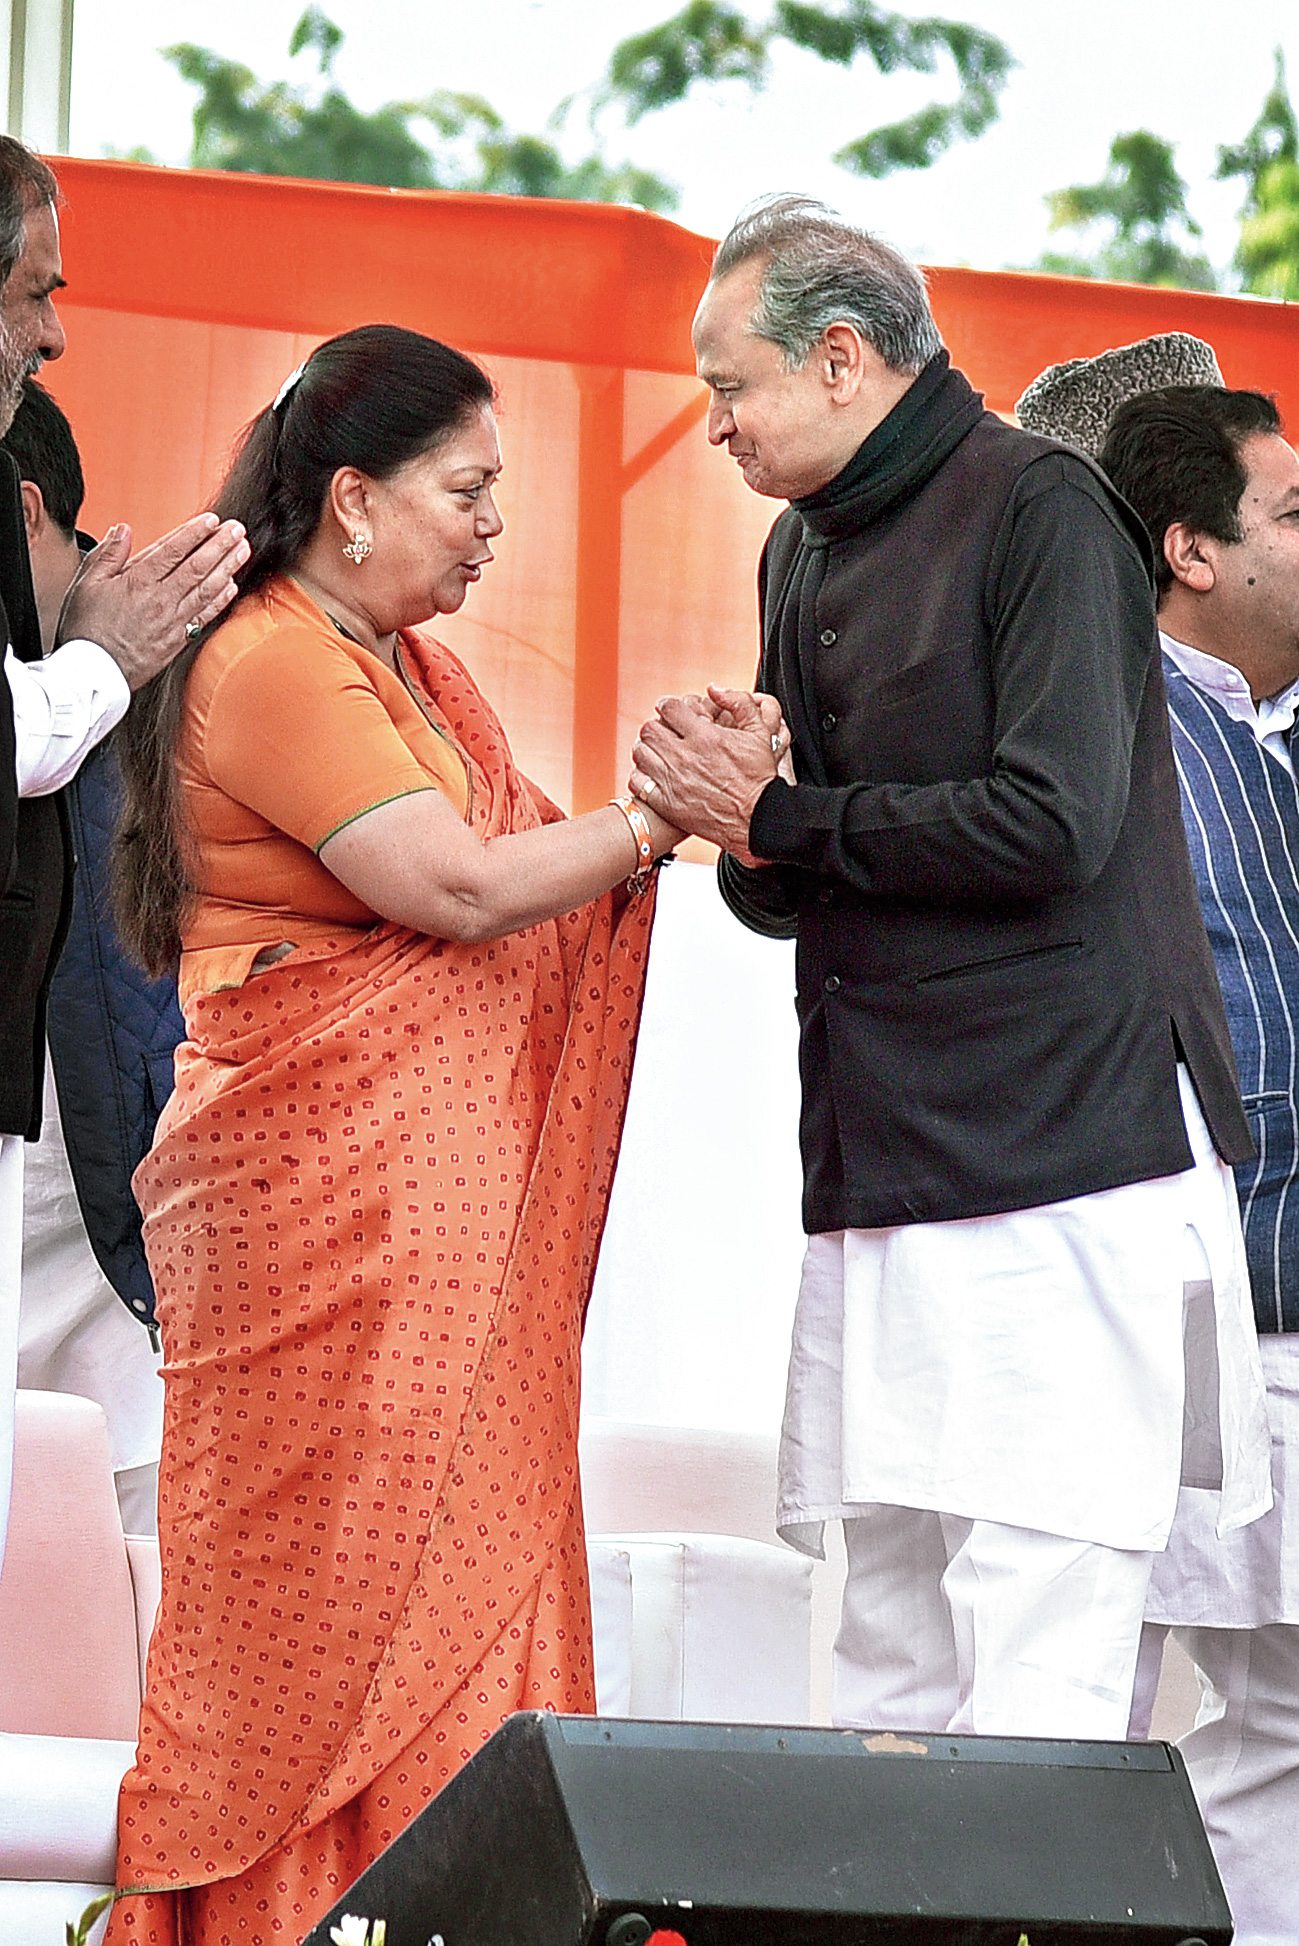 New Rajasthan chief minister Ashok Gehlot and his predecessor Vasundhara Raje greet each other in Jaipur.